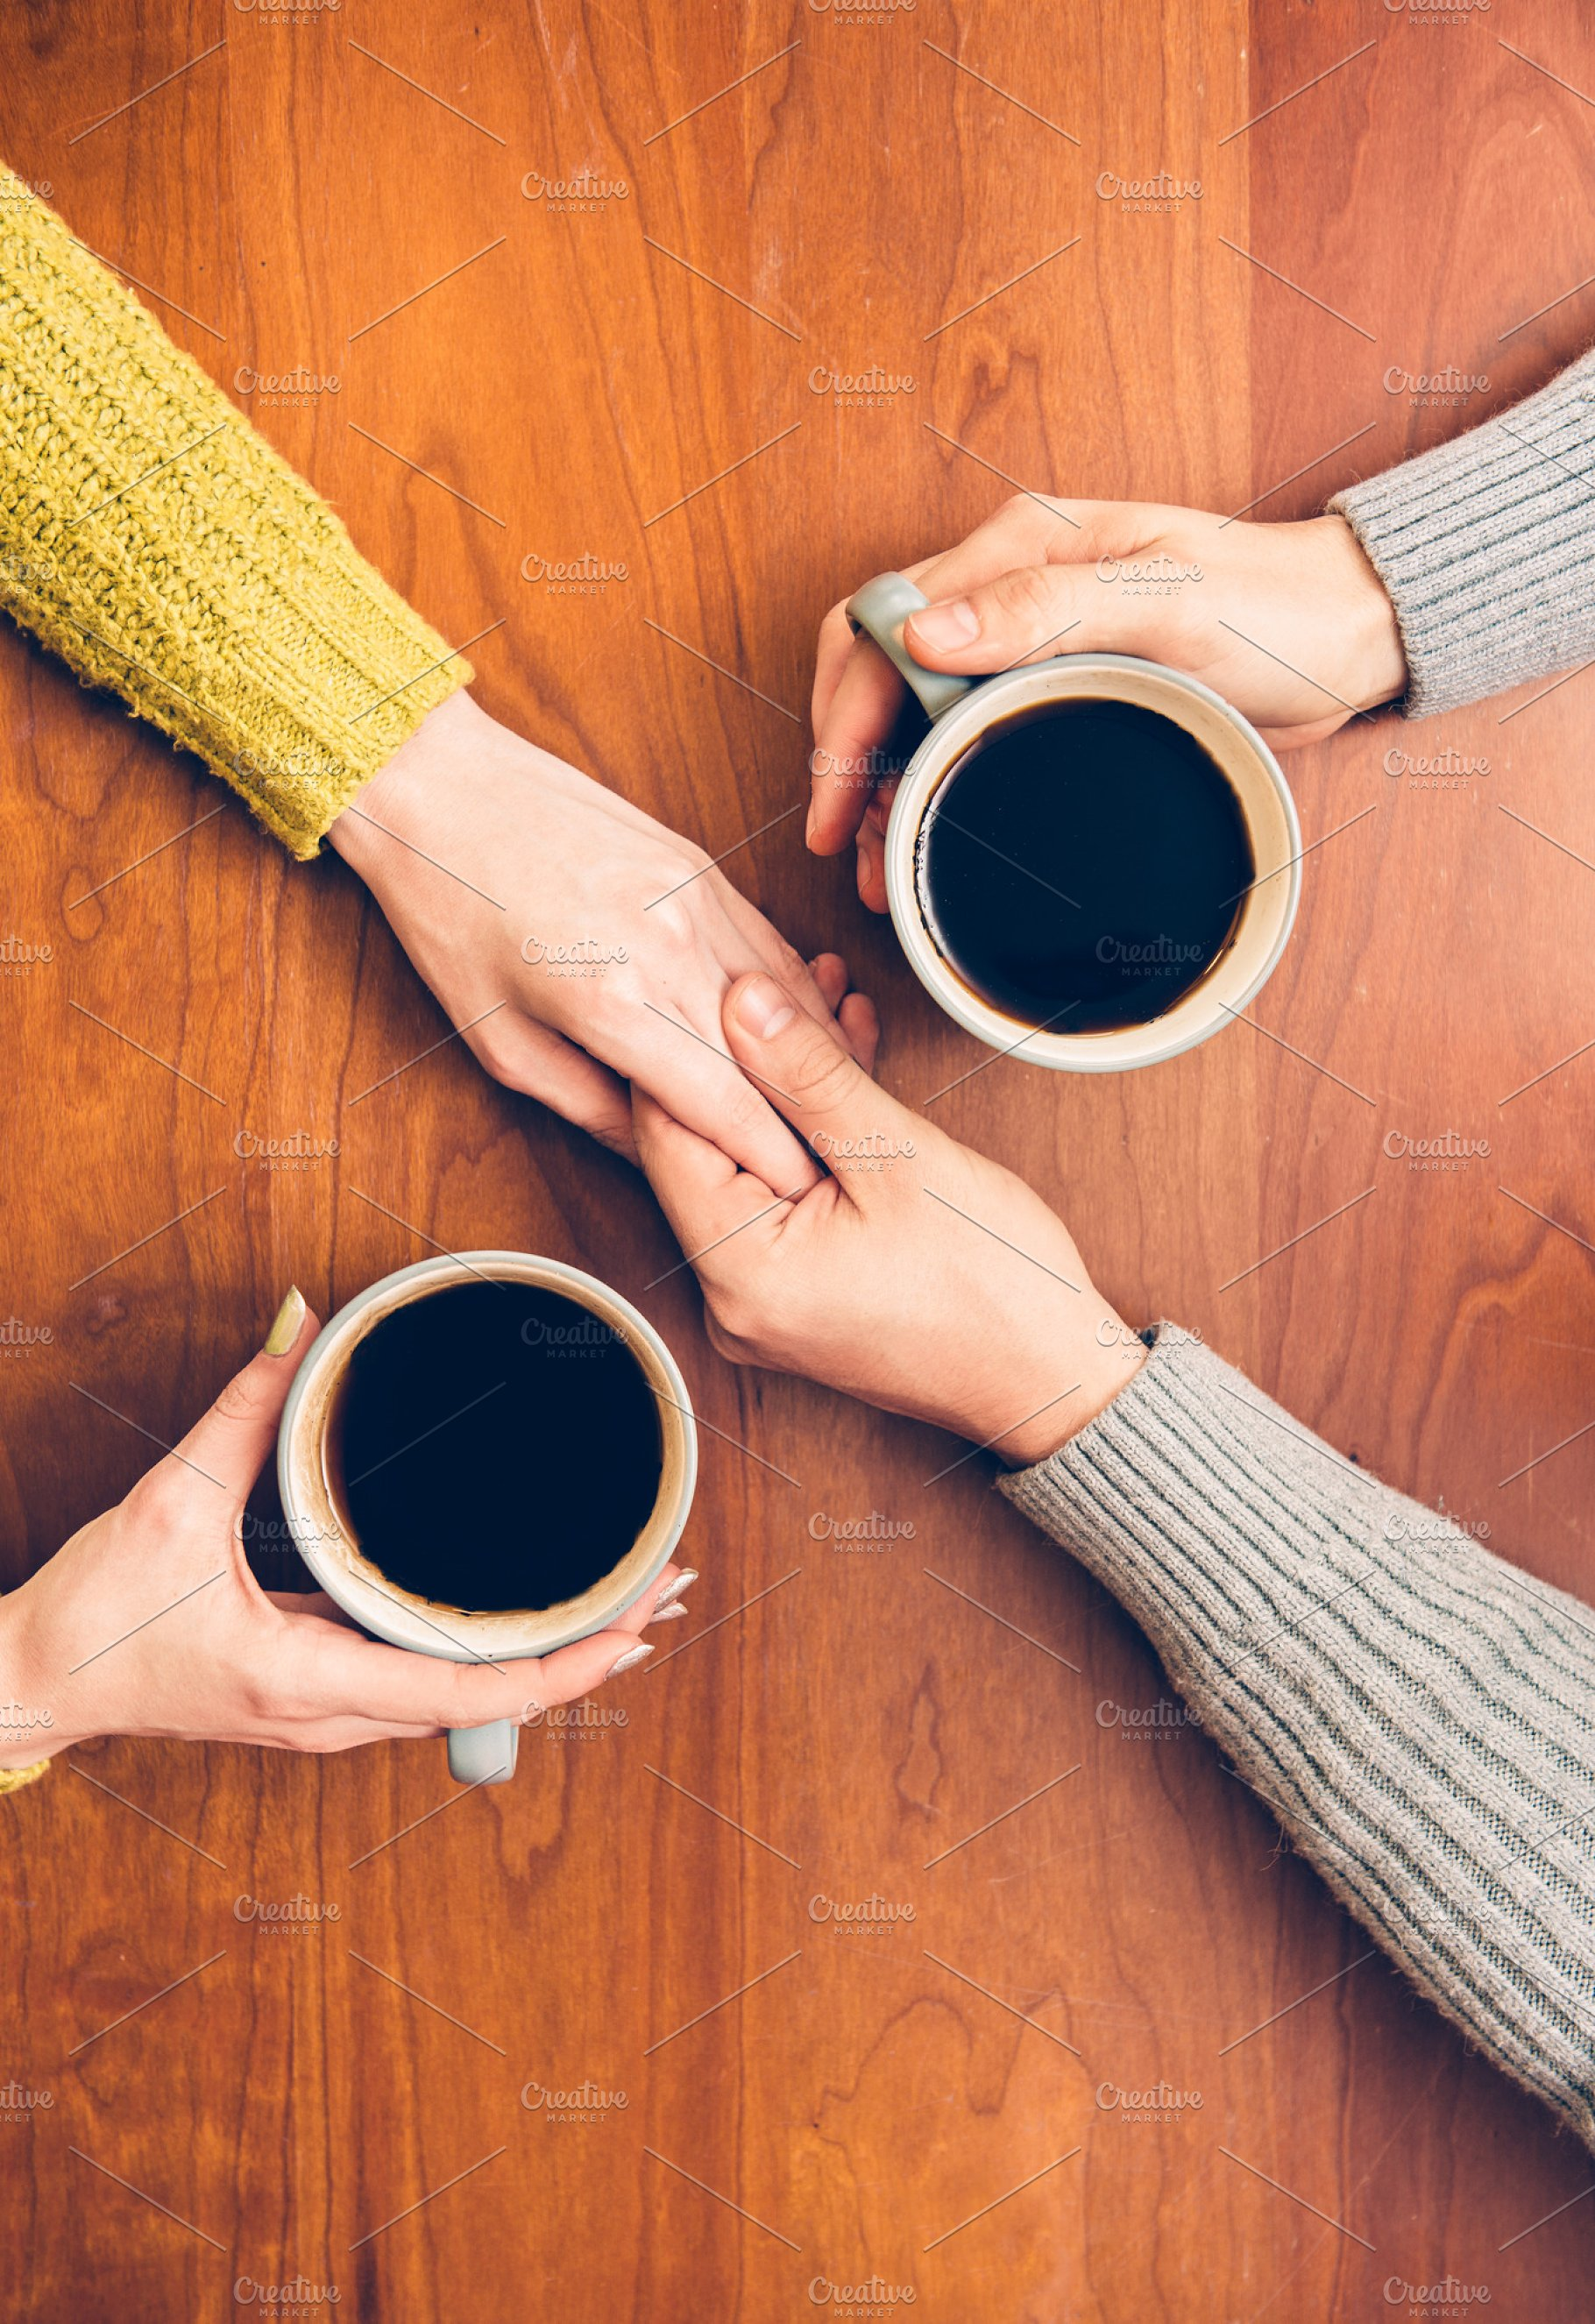 People drinking coffee together | High-Quality People Images ~ Creative Market